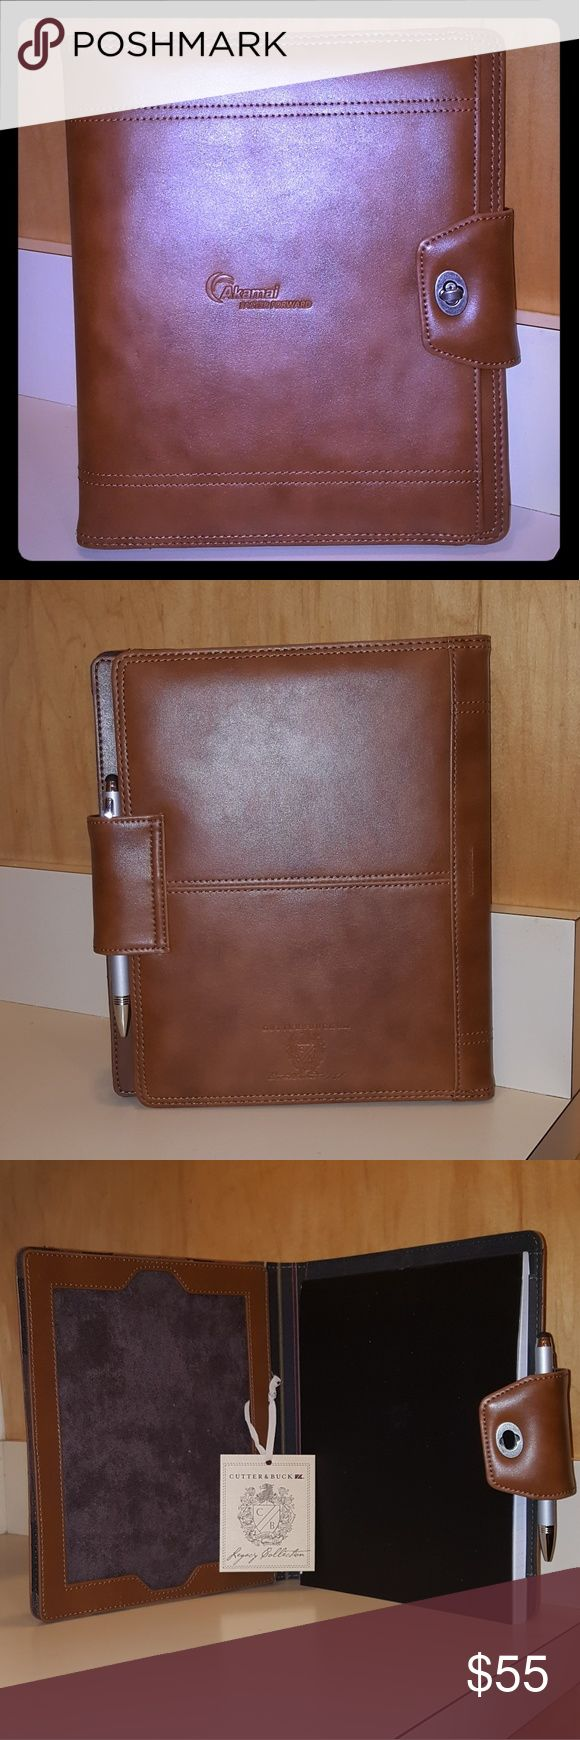 Leather Tablet Portfolio Brand New/Never Used In Original Box  Stunning Genuine Leather Tablet Portfolio that carries your tablet on the left and has a notebook and gorgeous silver diamond cut pen w/stylus! Brand: Cutter & Buck Size: One Size Fits Most Tablets  Color: Genuine Tan Leather Cutter & Buck Accessories Tablet Cases